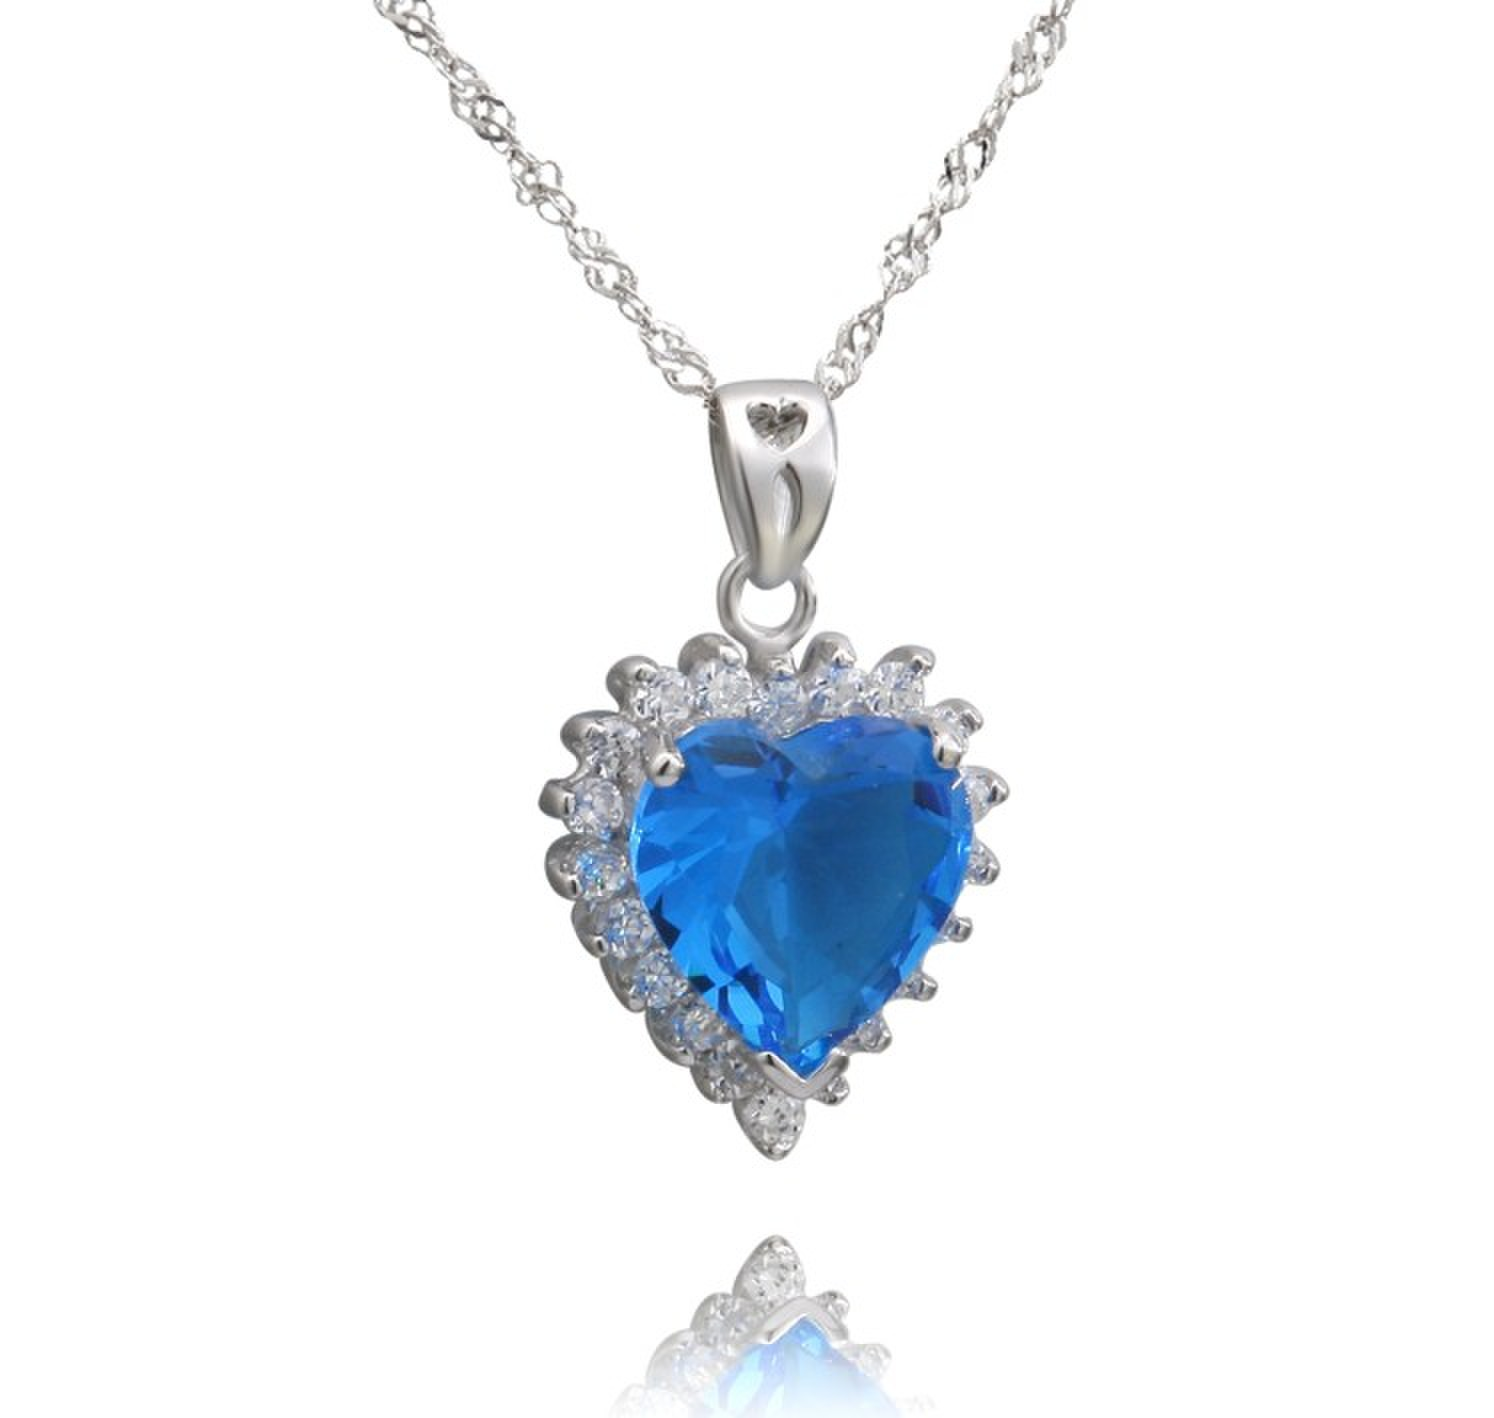 Factory wholesale 925 sterling silver Heart of the ocean pendant necklace